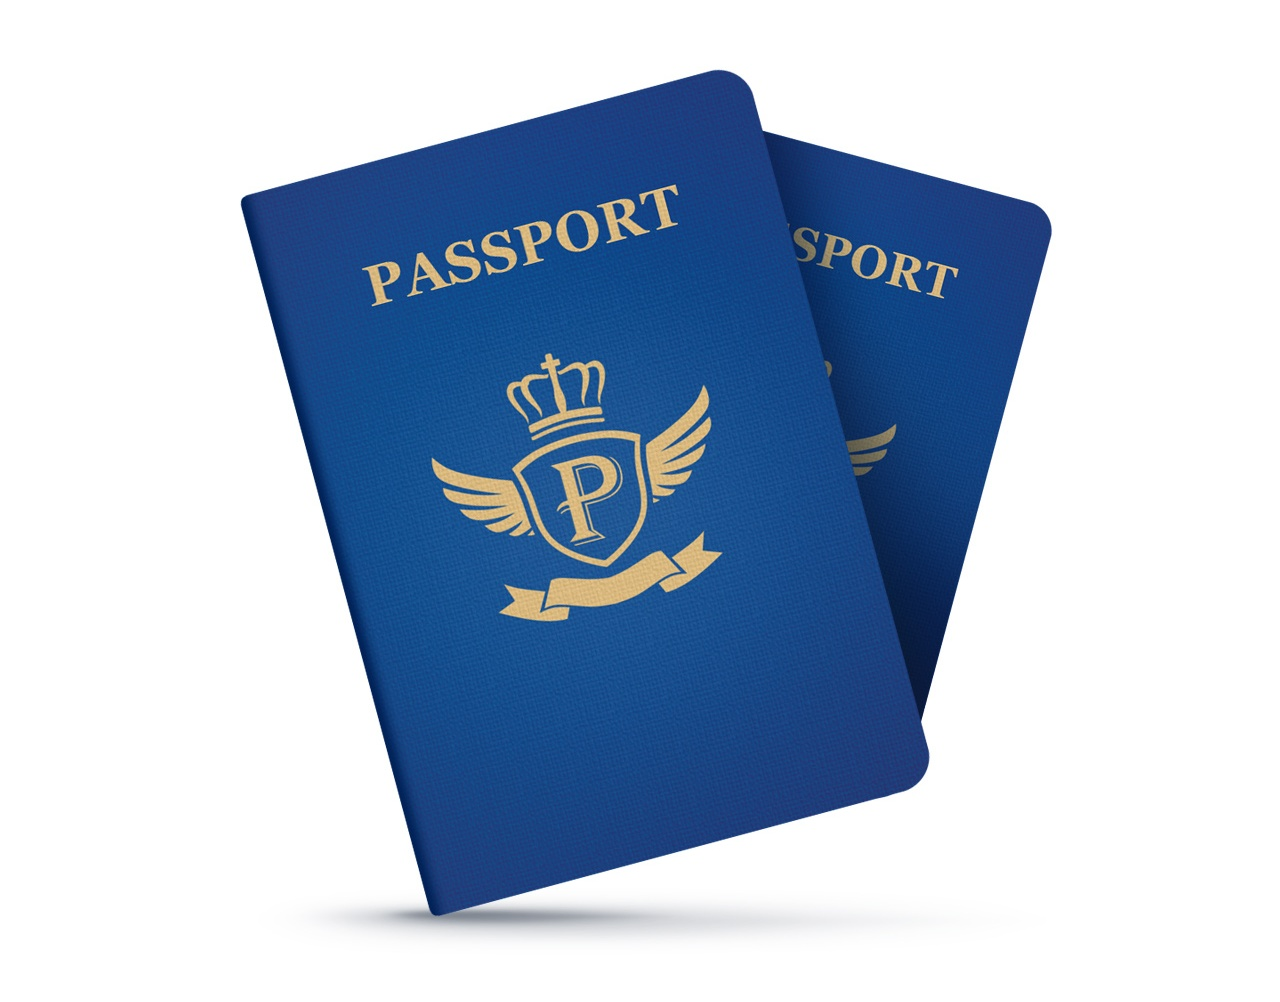 Passport Clipart.